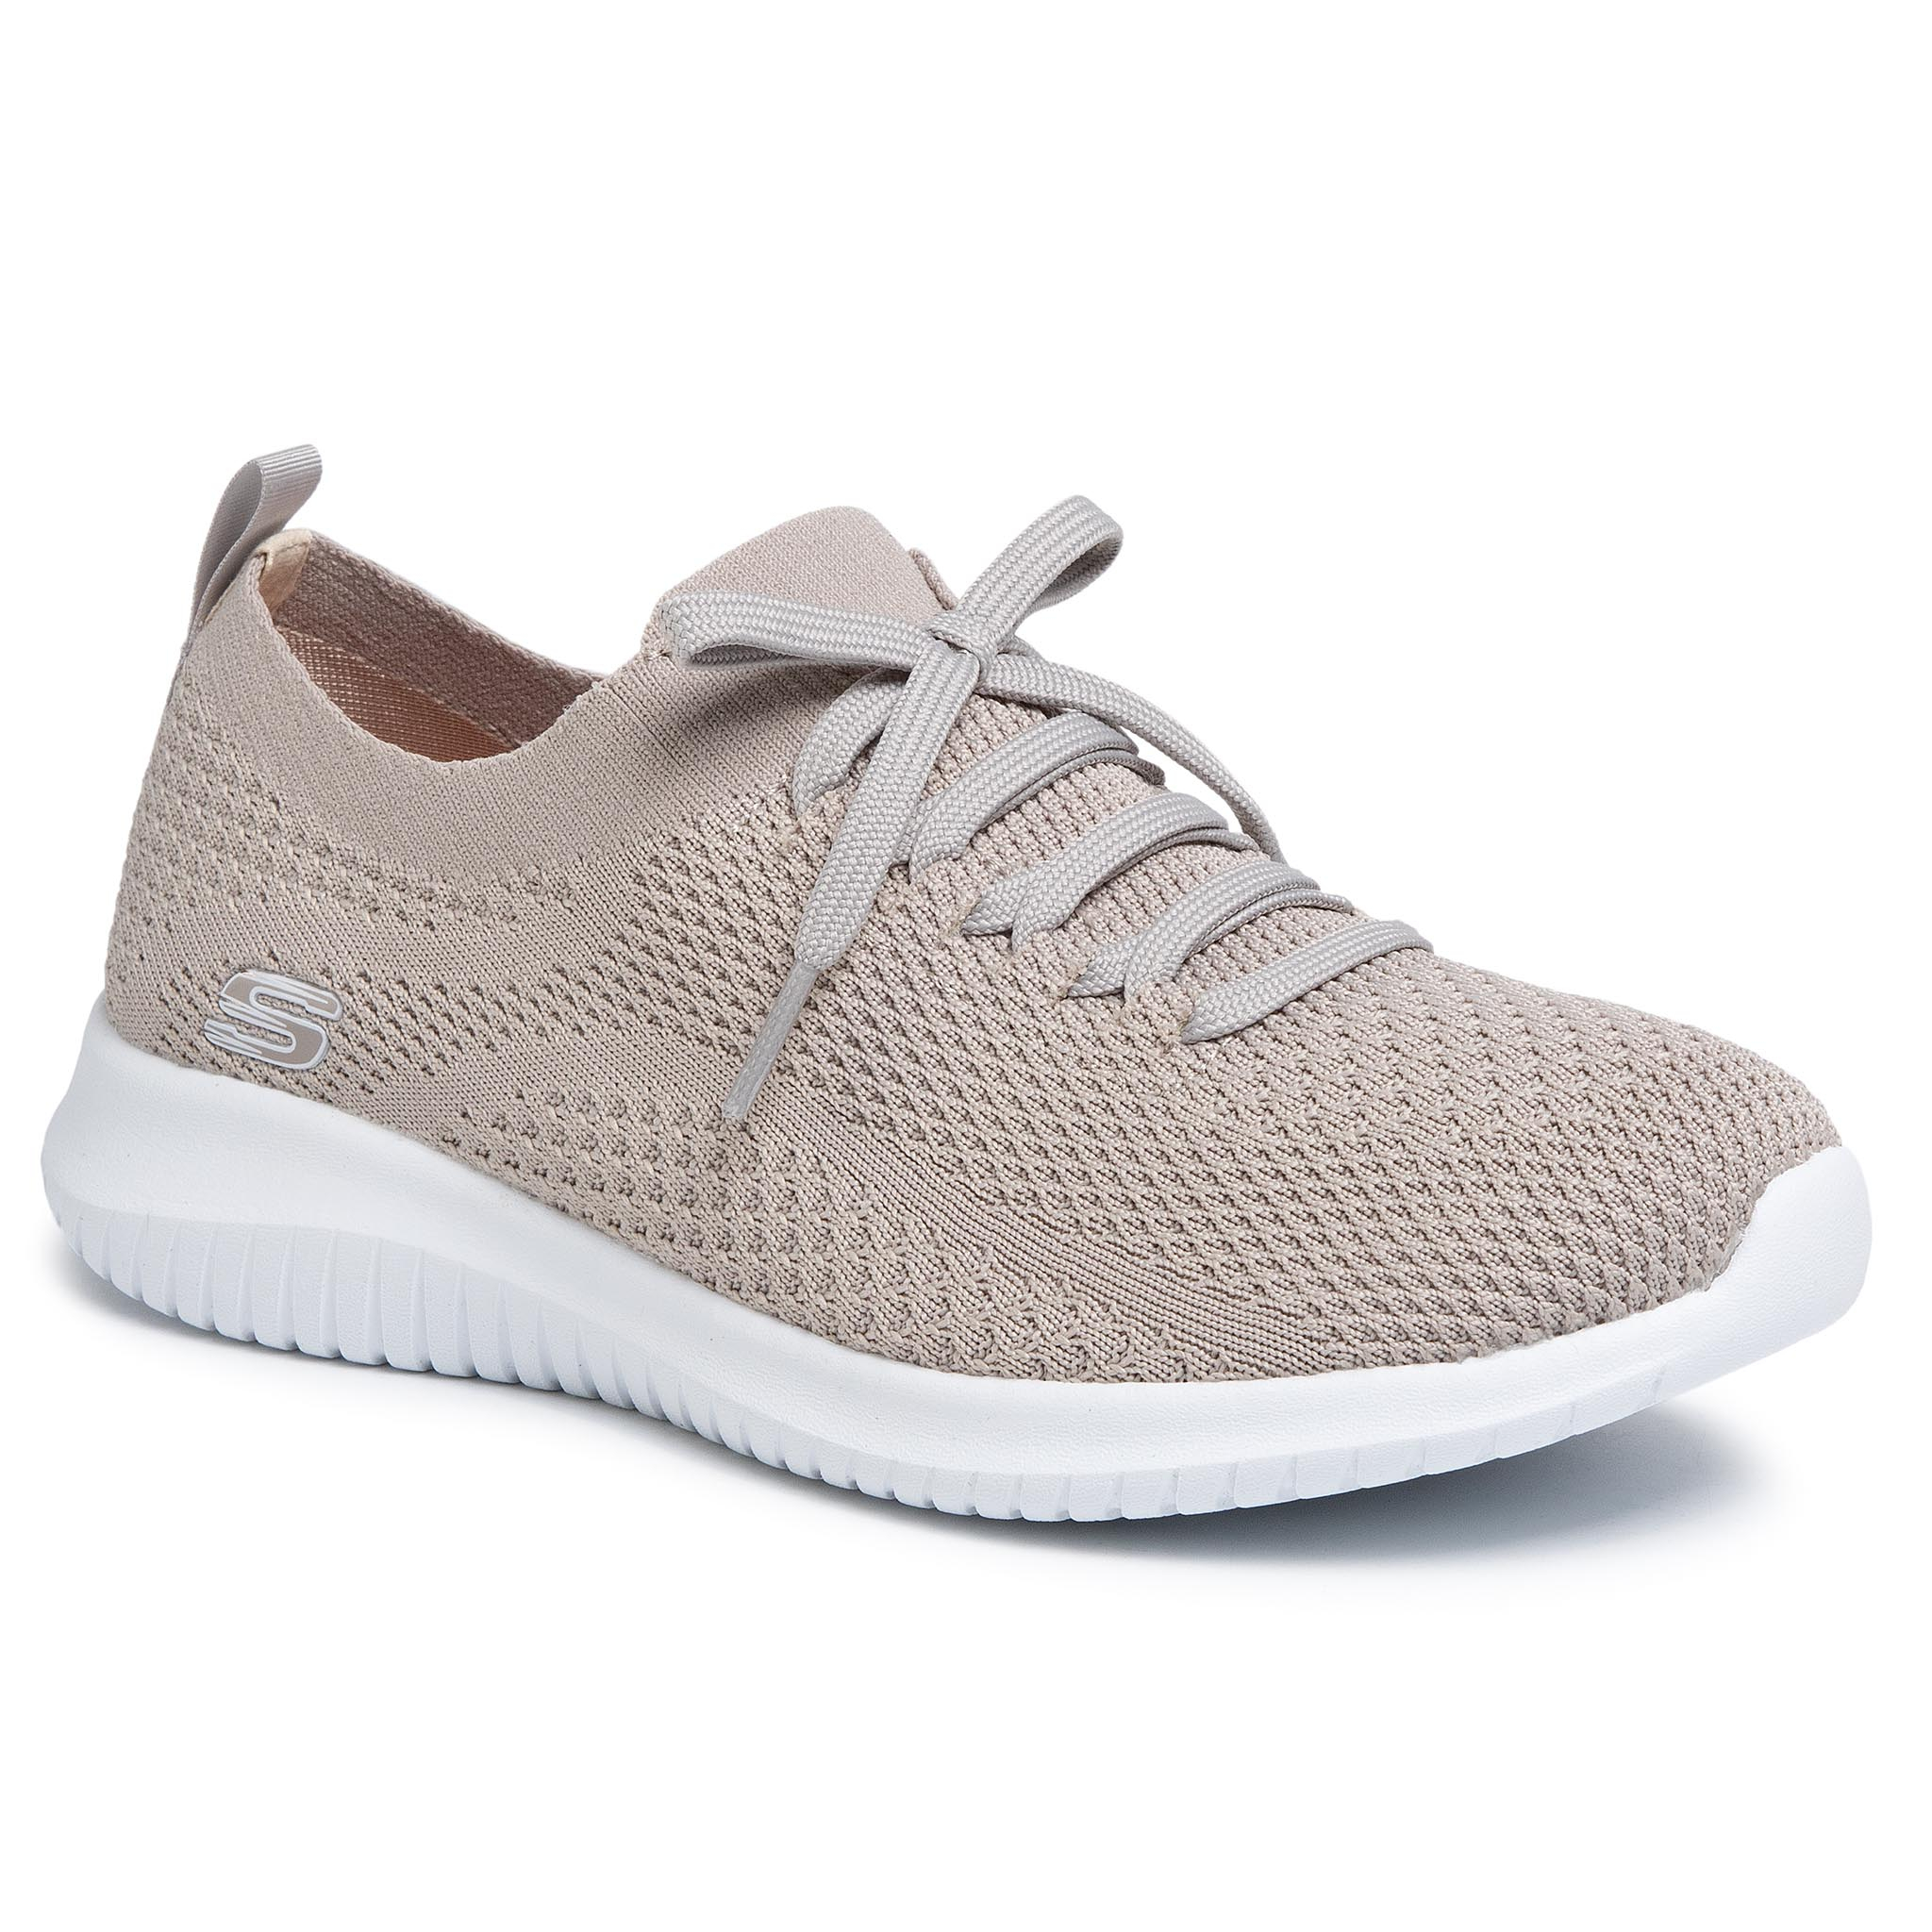 Sneakers SKECHERS - Statements 12841/TPE Taupe